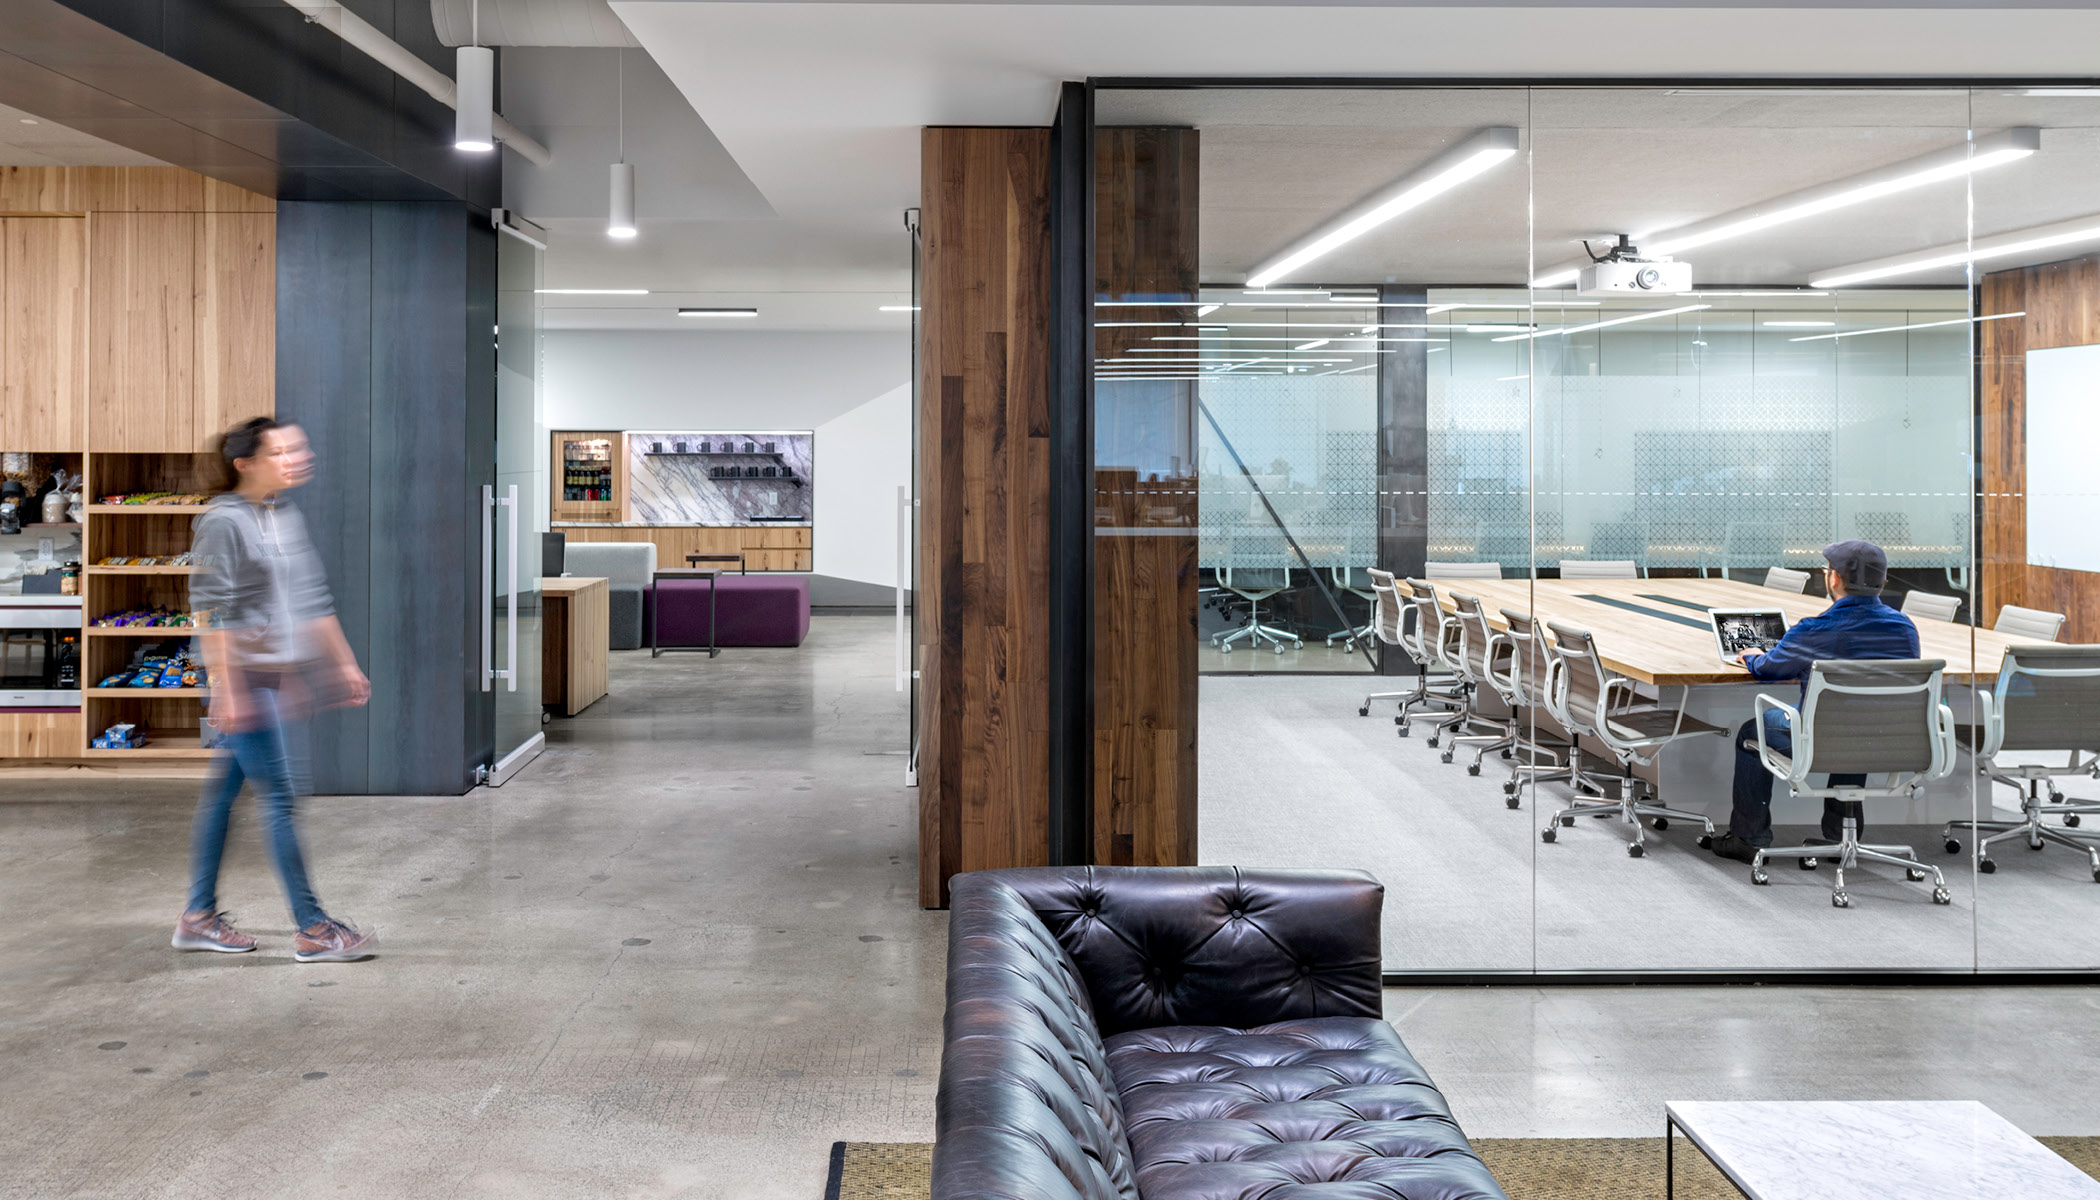 Uber's San Francisco Headquarters1